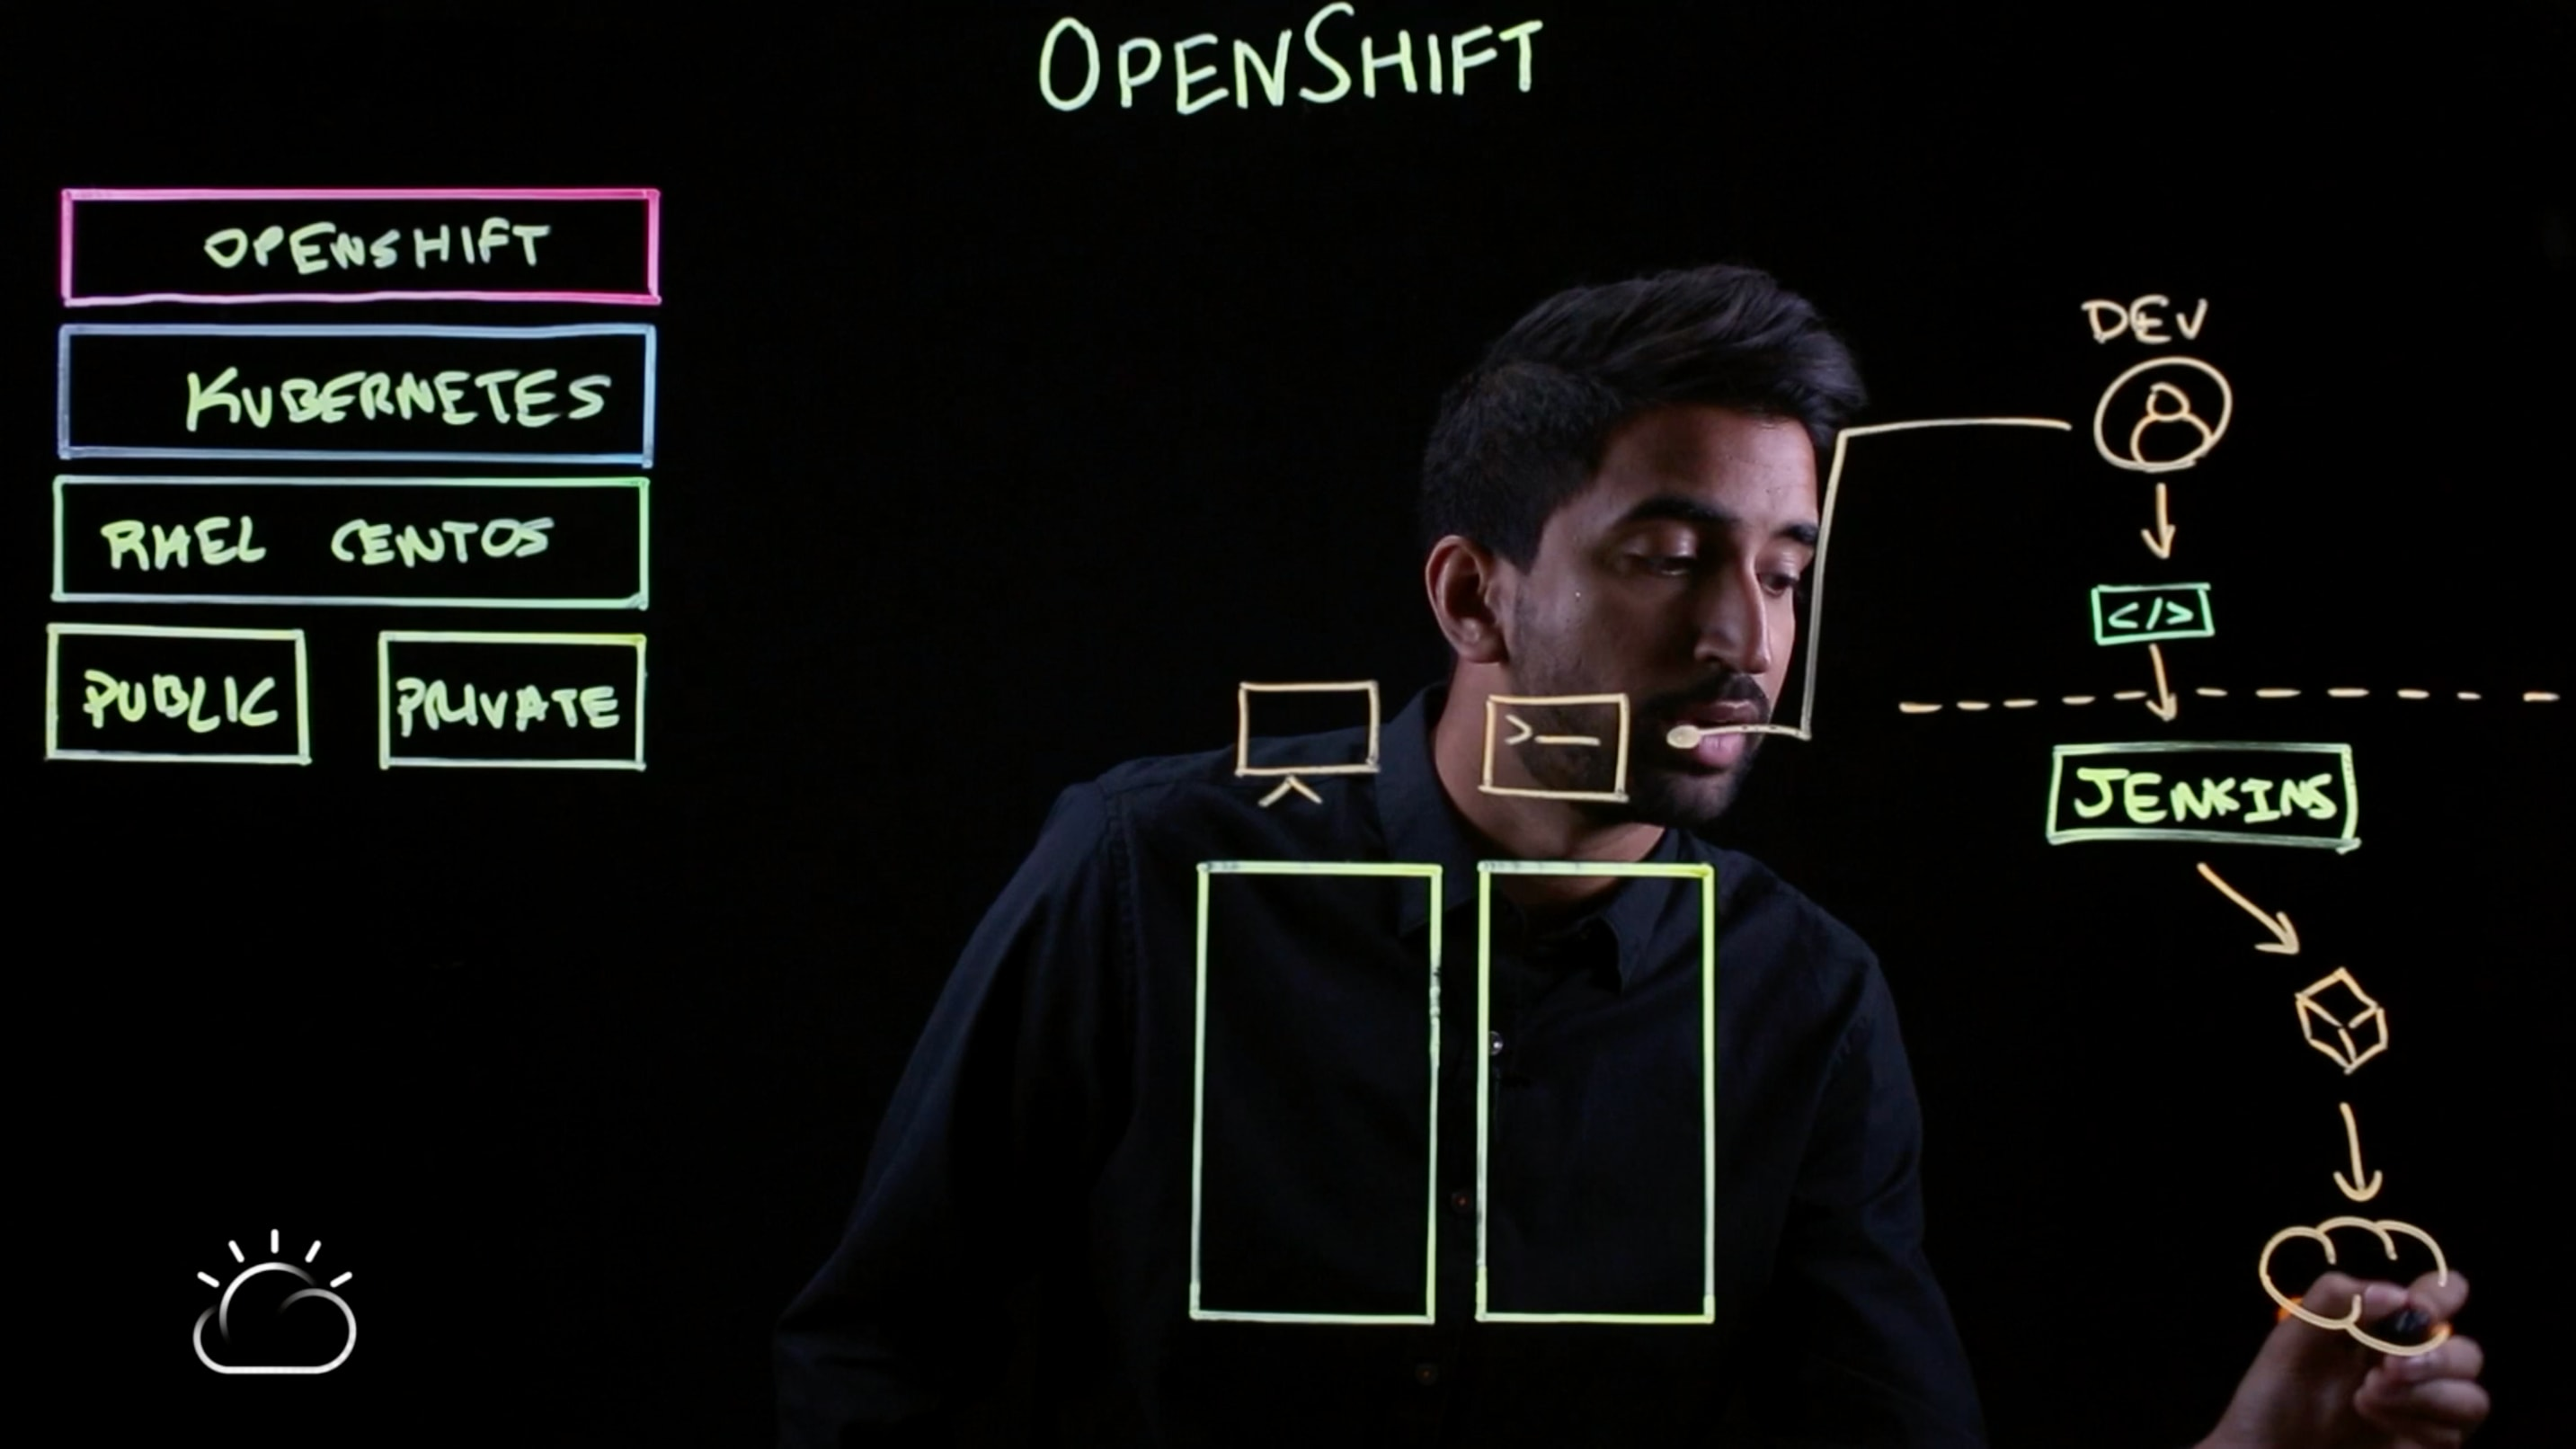 Put it into a registry—a private registry—which comes built-in in OpenShift